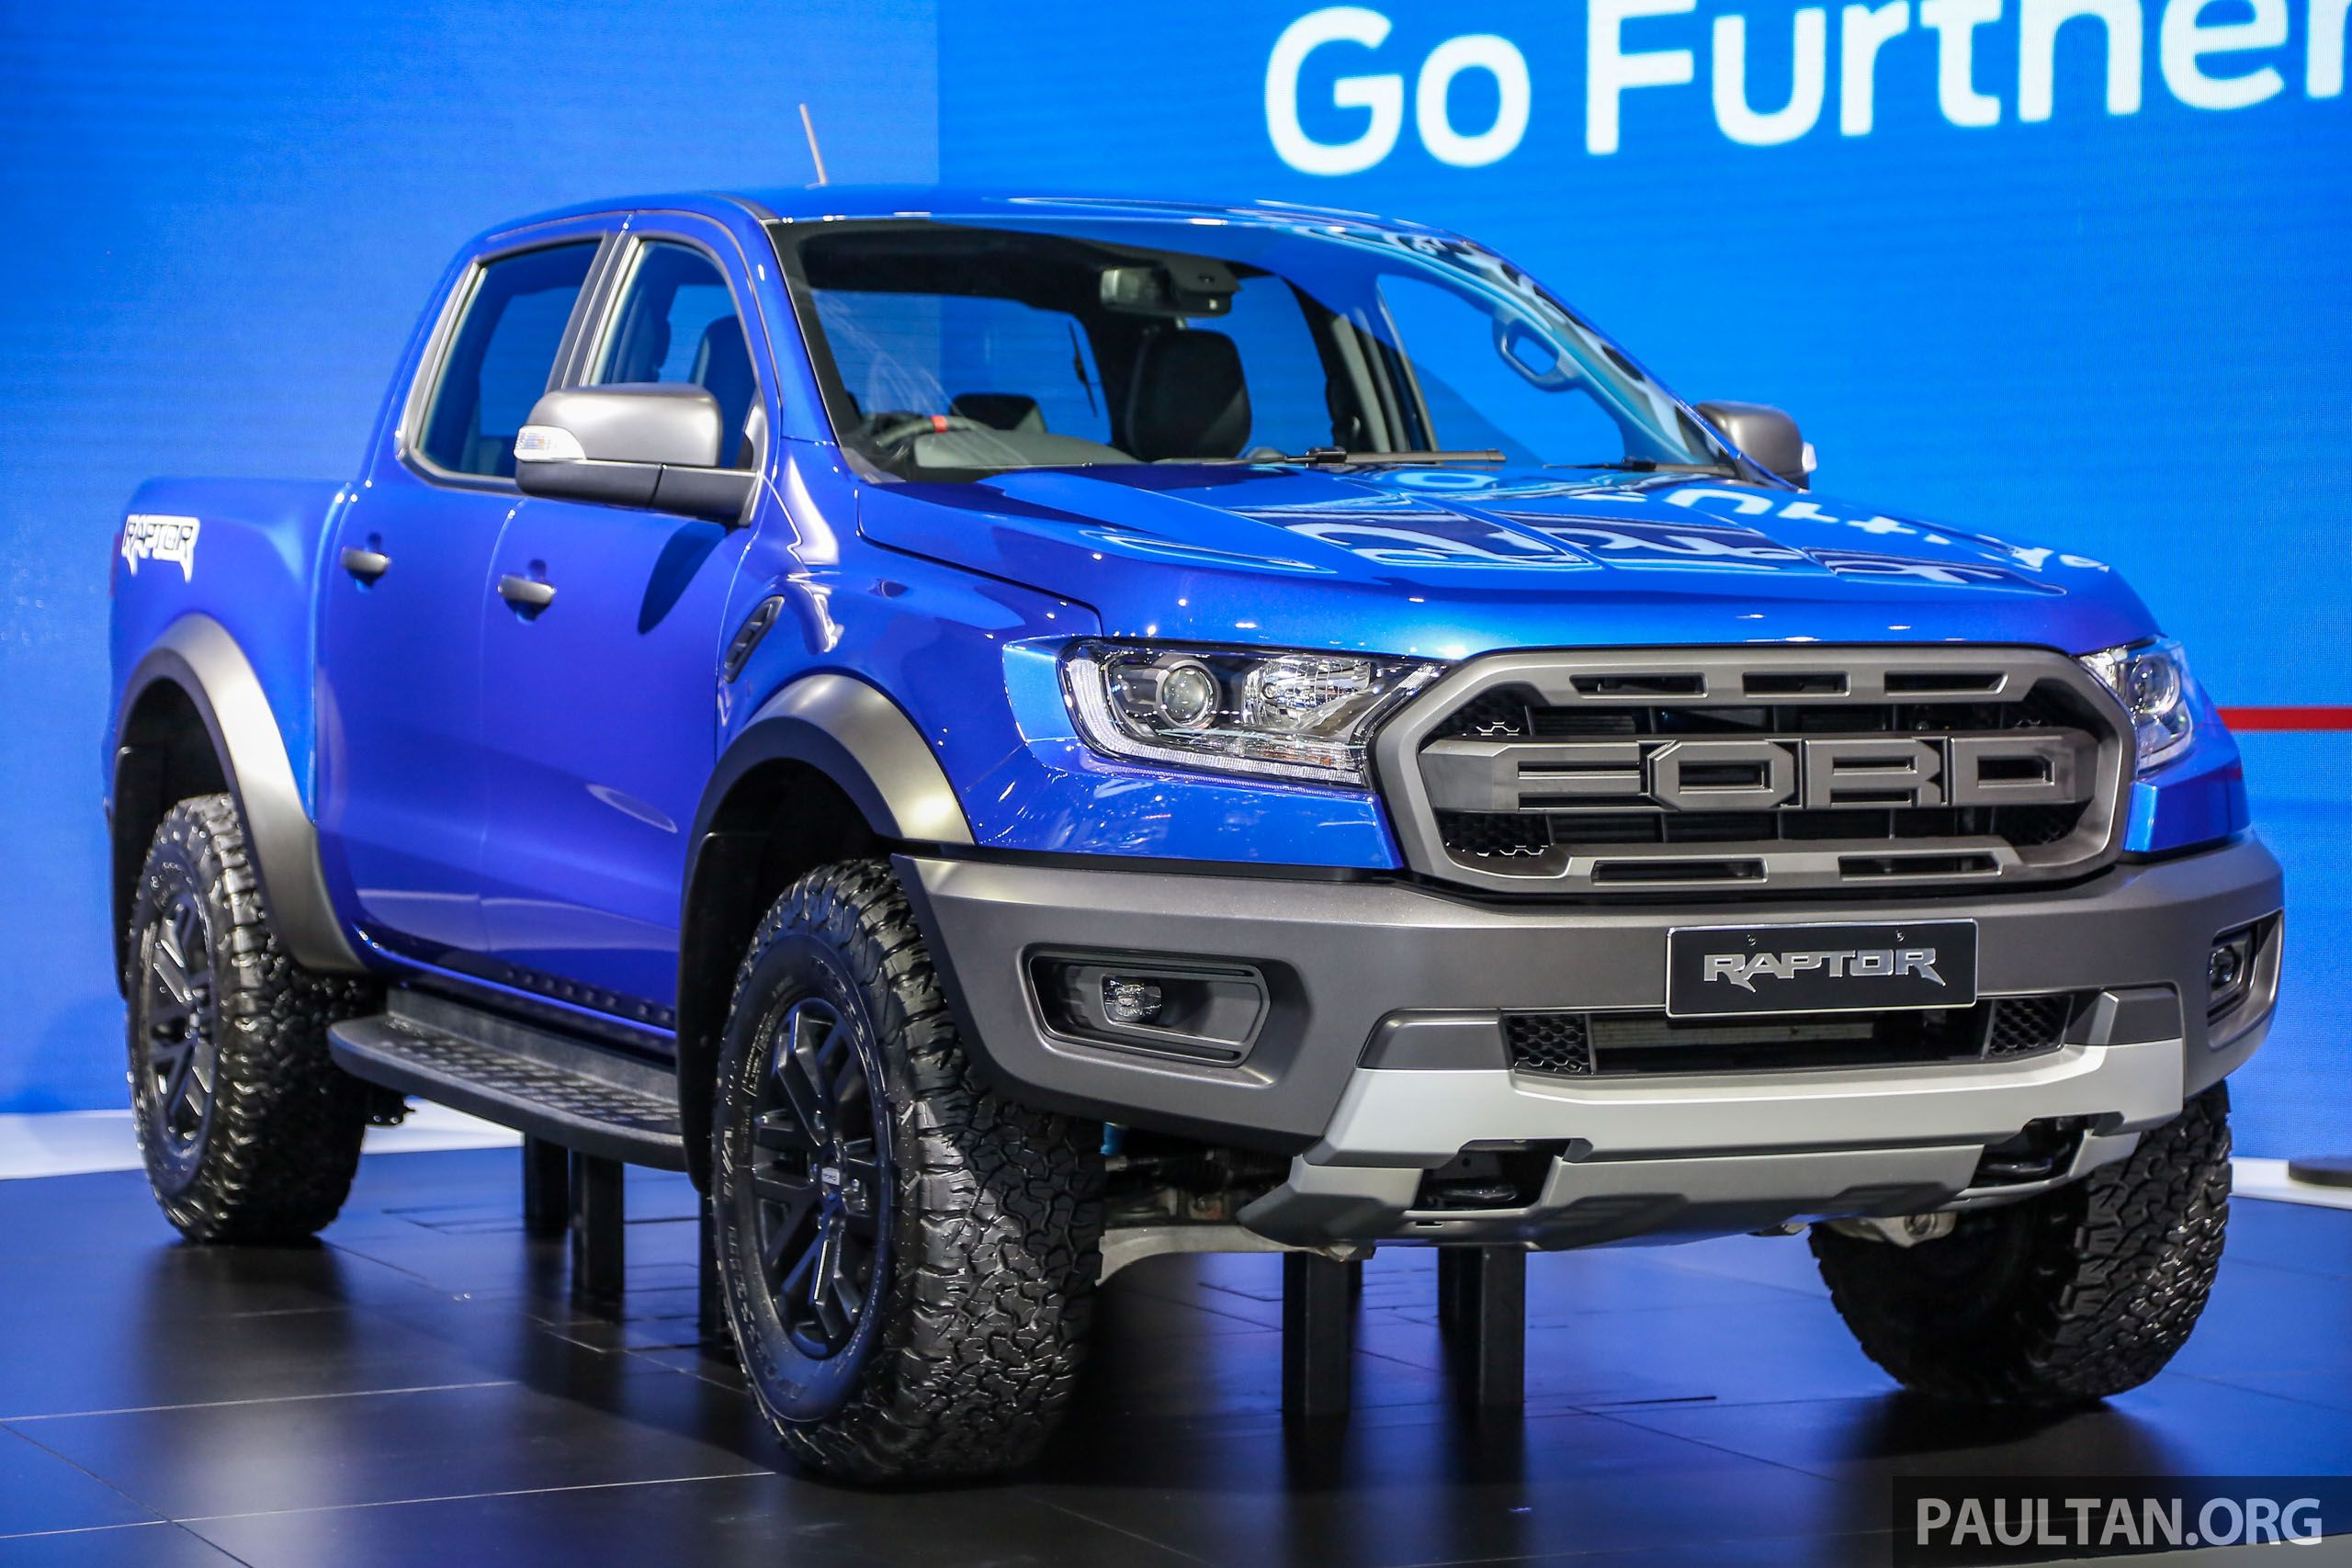 Australians Will Be Able To Get Their Hands On The New Ford Ranger Raptor This Year The Blue Oval Recently Announced It Ford Ranger Ford Ranger Raptor Ranger